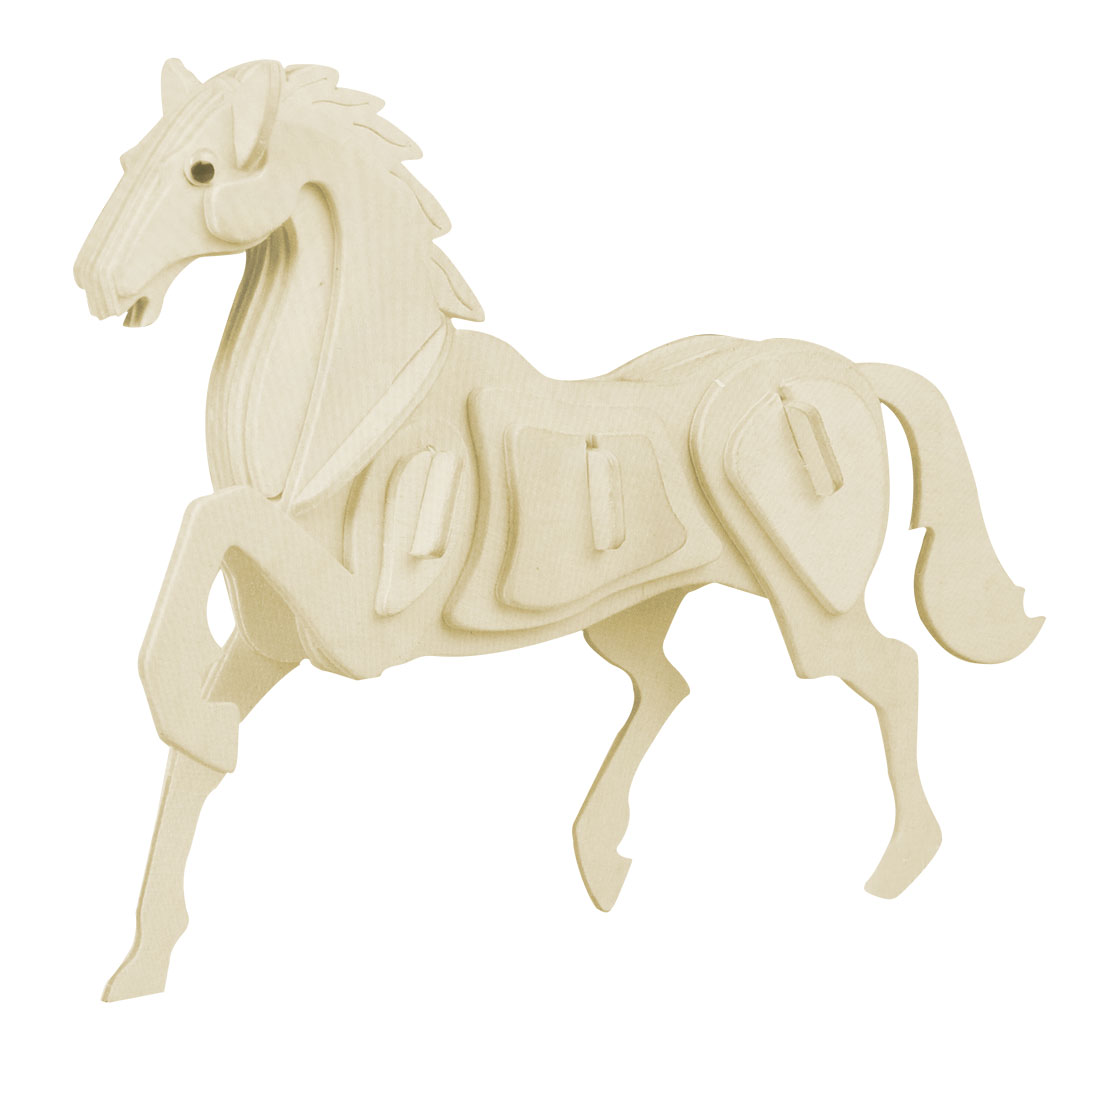 Emulation Horse Model 3D Picture Wooden Assemble Puzzle Toy for Collectors